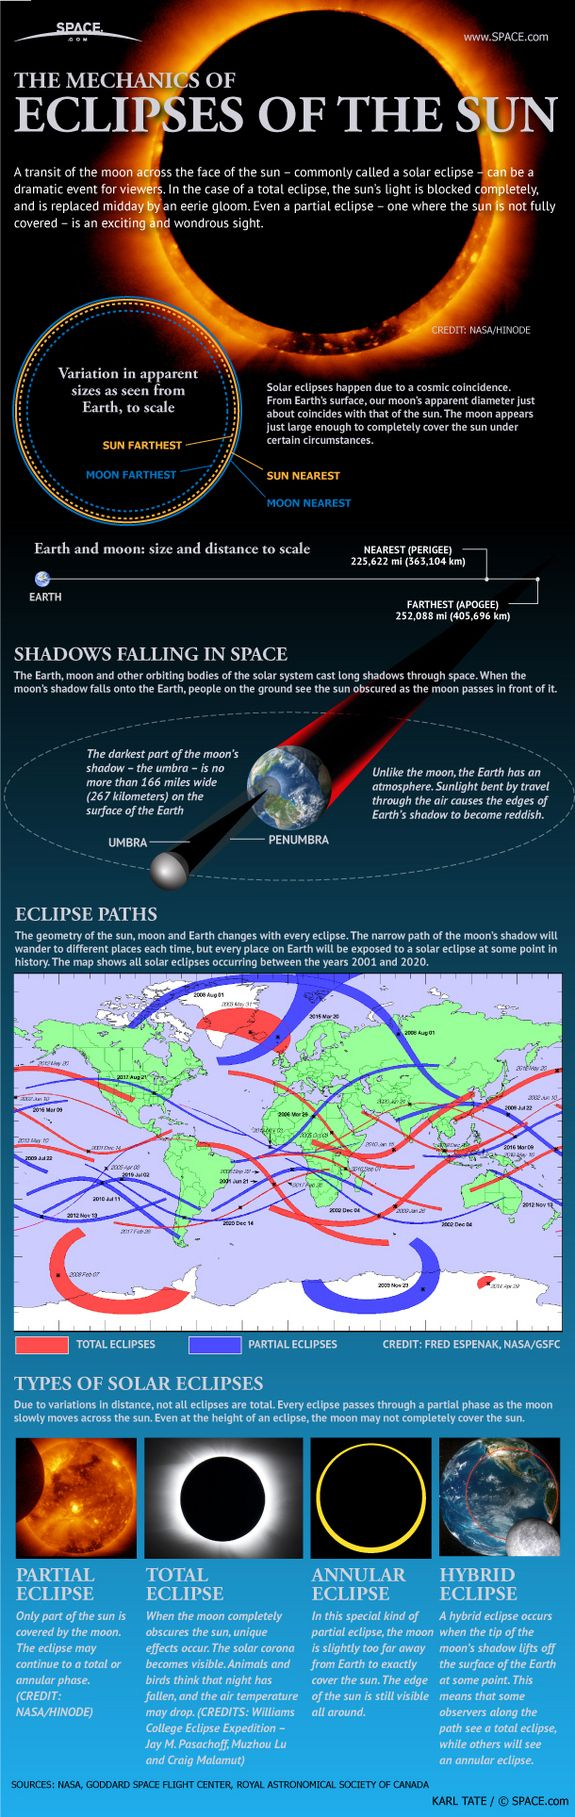 Solar Eclipses An Observers Guide 509df8be2c750 Solar Eclipses Solar Eclipse Solar Eclipse Activity